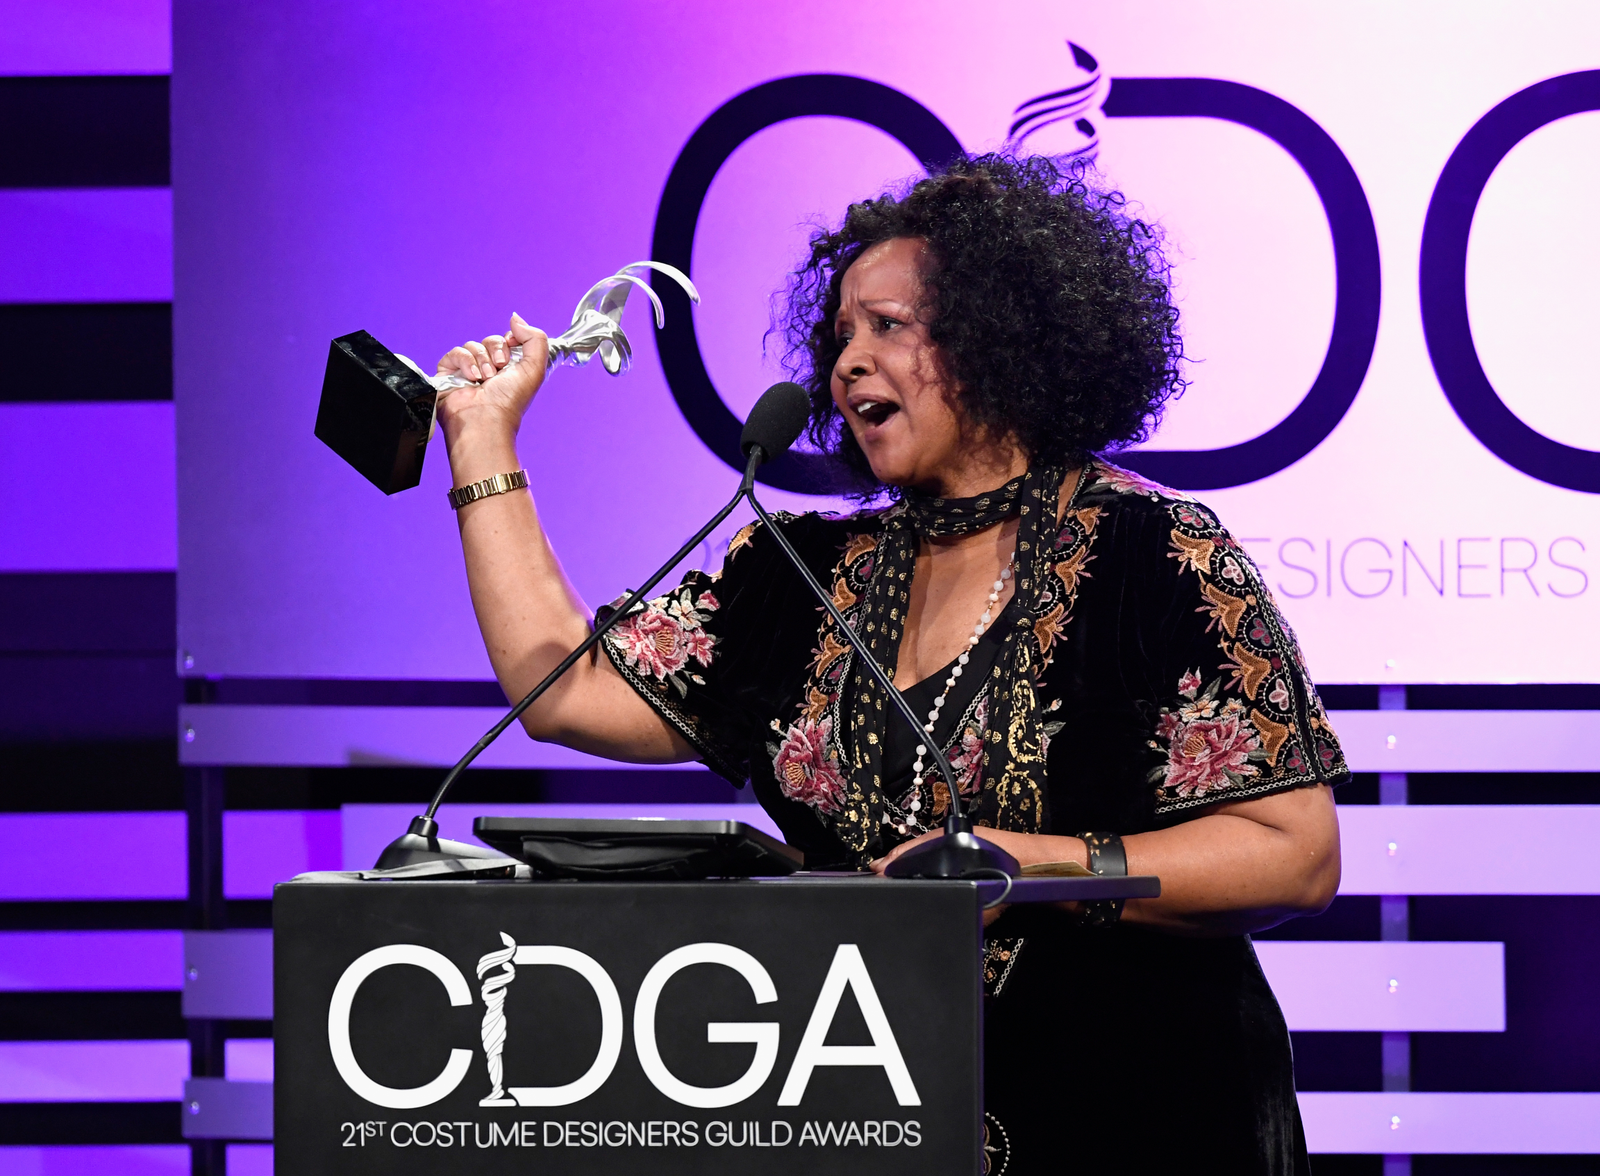 Sharen Davis accepts the Excellence in Sci-Fi / Fantasy Television award for 'Westworld' onstage during The 21st CDGA (Costume Designers Guild Awards) at The Beverly Hilton Hotel on February 19, 2019 in Beverly Hills, California.